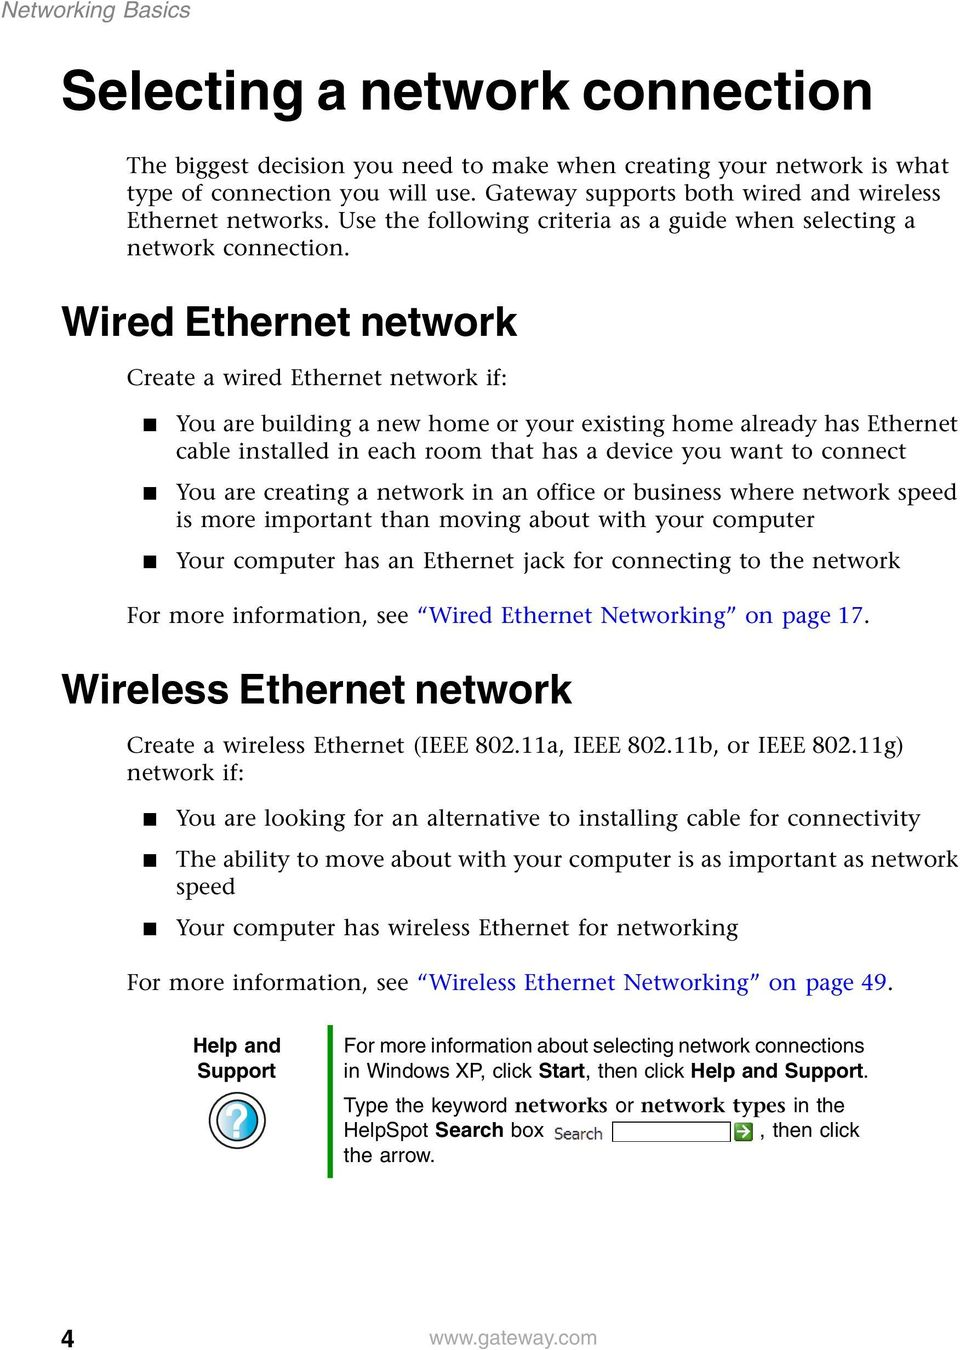 Wired Ethernet network Create a wired Ethernet network if: You are building a new home or your existing home already has Ethernet cable installed in each room that has a device you want to connect